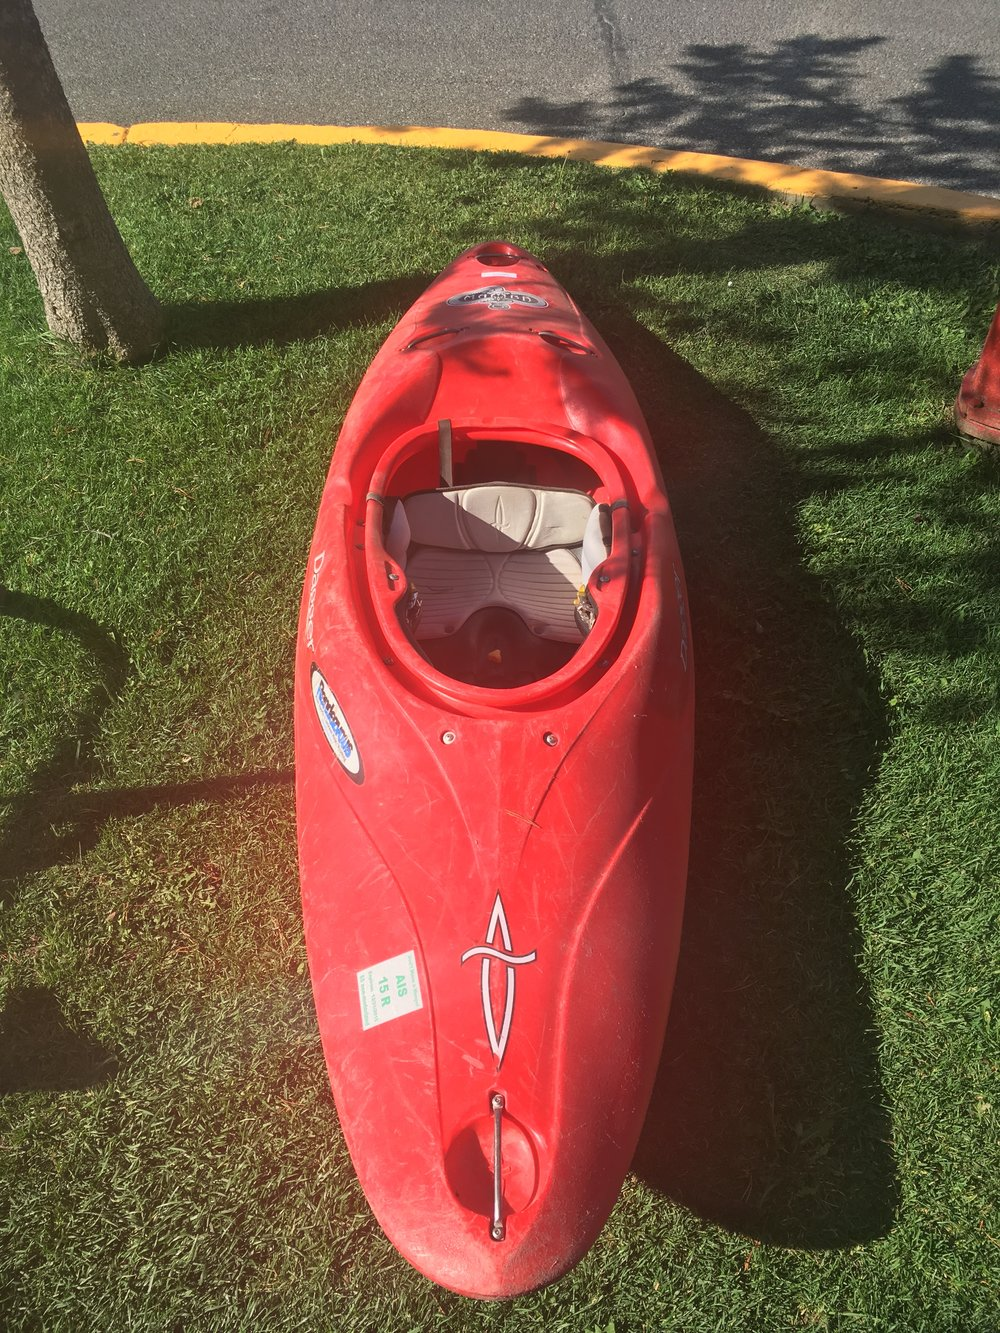 The Dagger Mamba 8.1 is great boat for the beginner kayaker looking for a predictable kayak that's easy to roll. Retail for the boat is listed around $1,200 but we can get you on the water for $179!